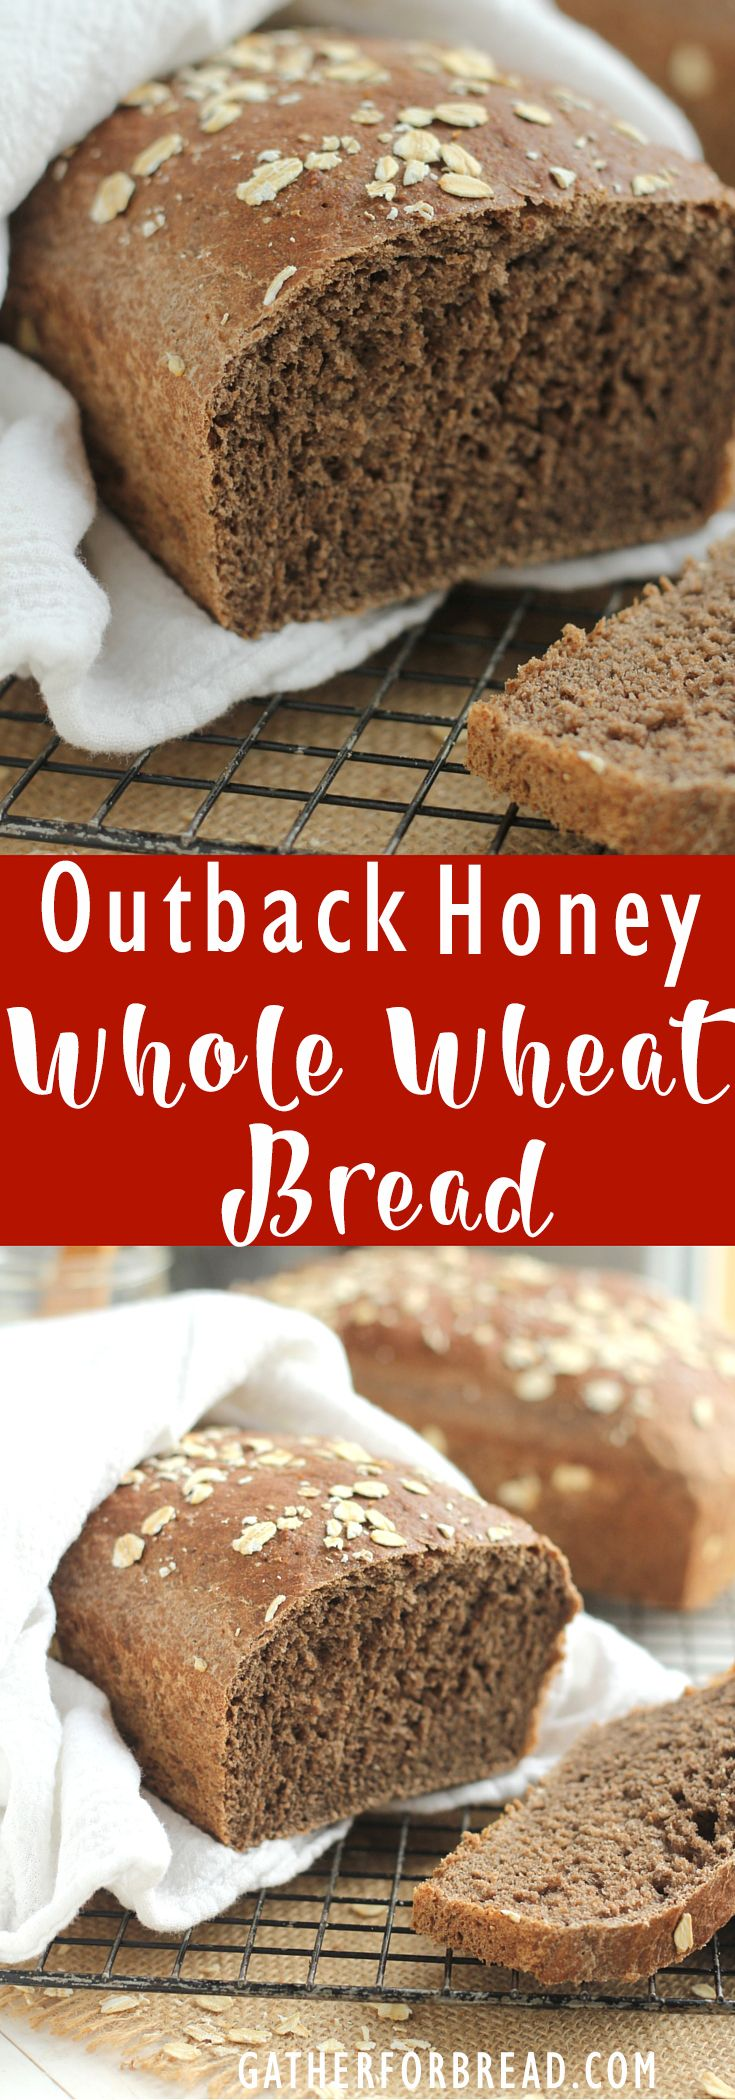 Outback Honey Whole Wheat Bread (Bake Bread Rustic)